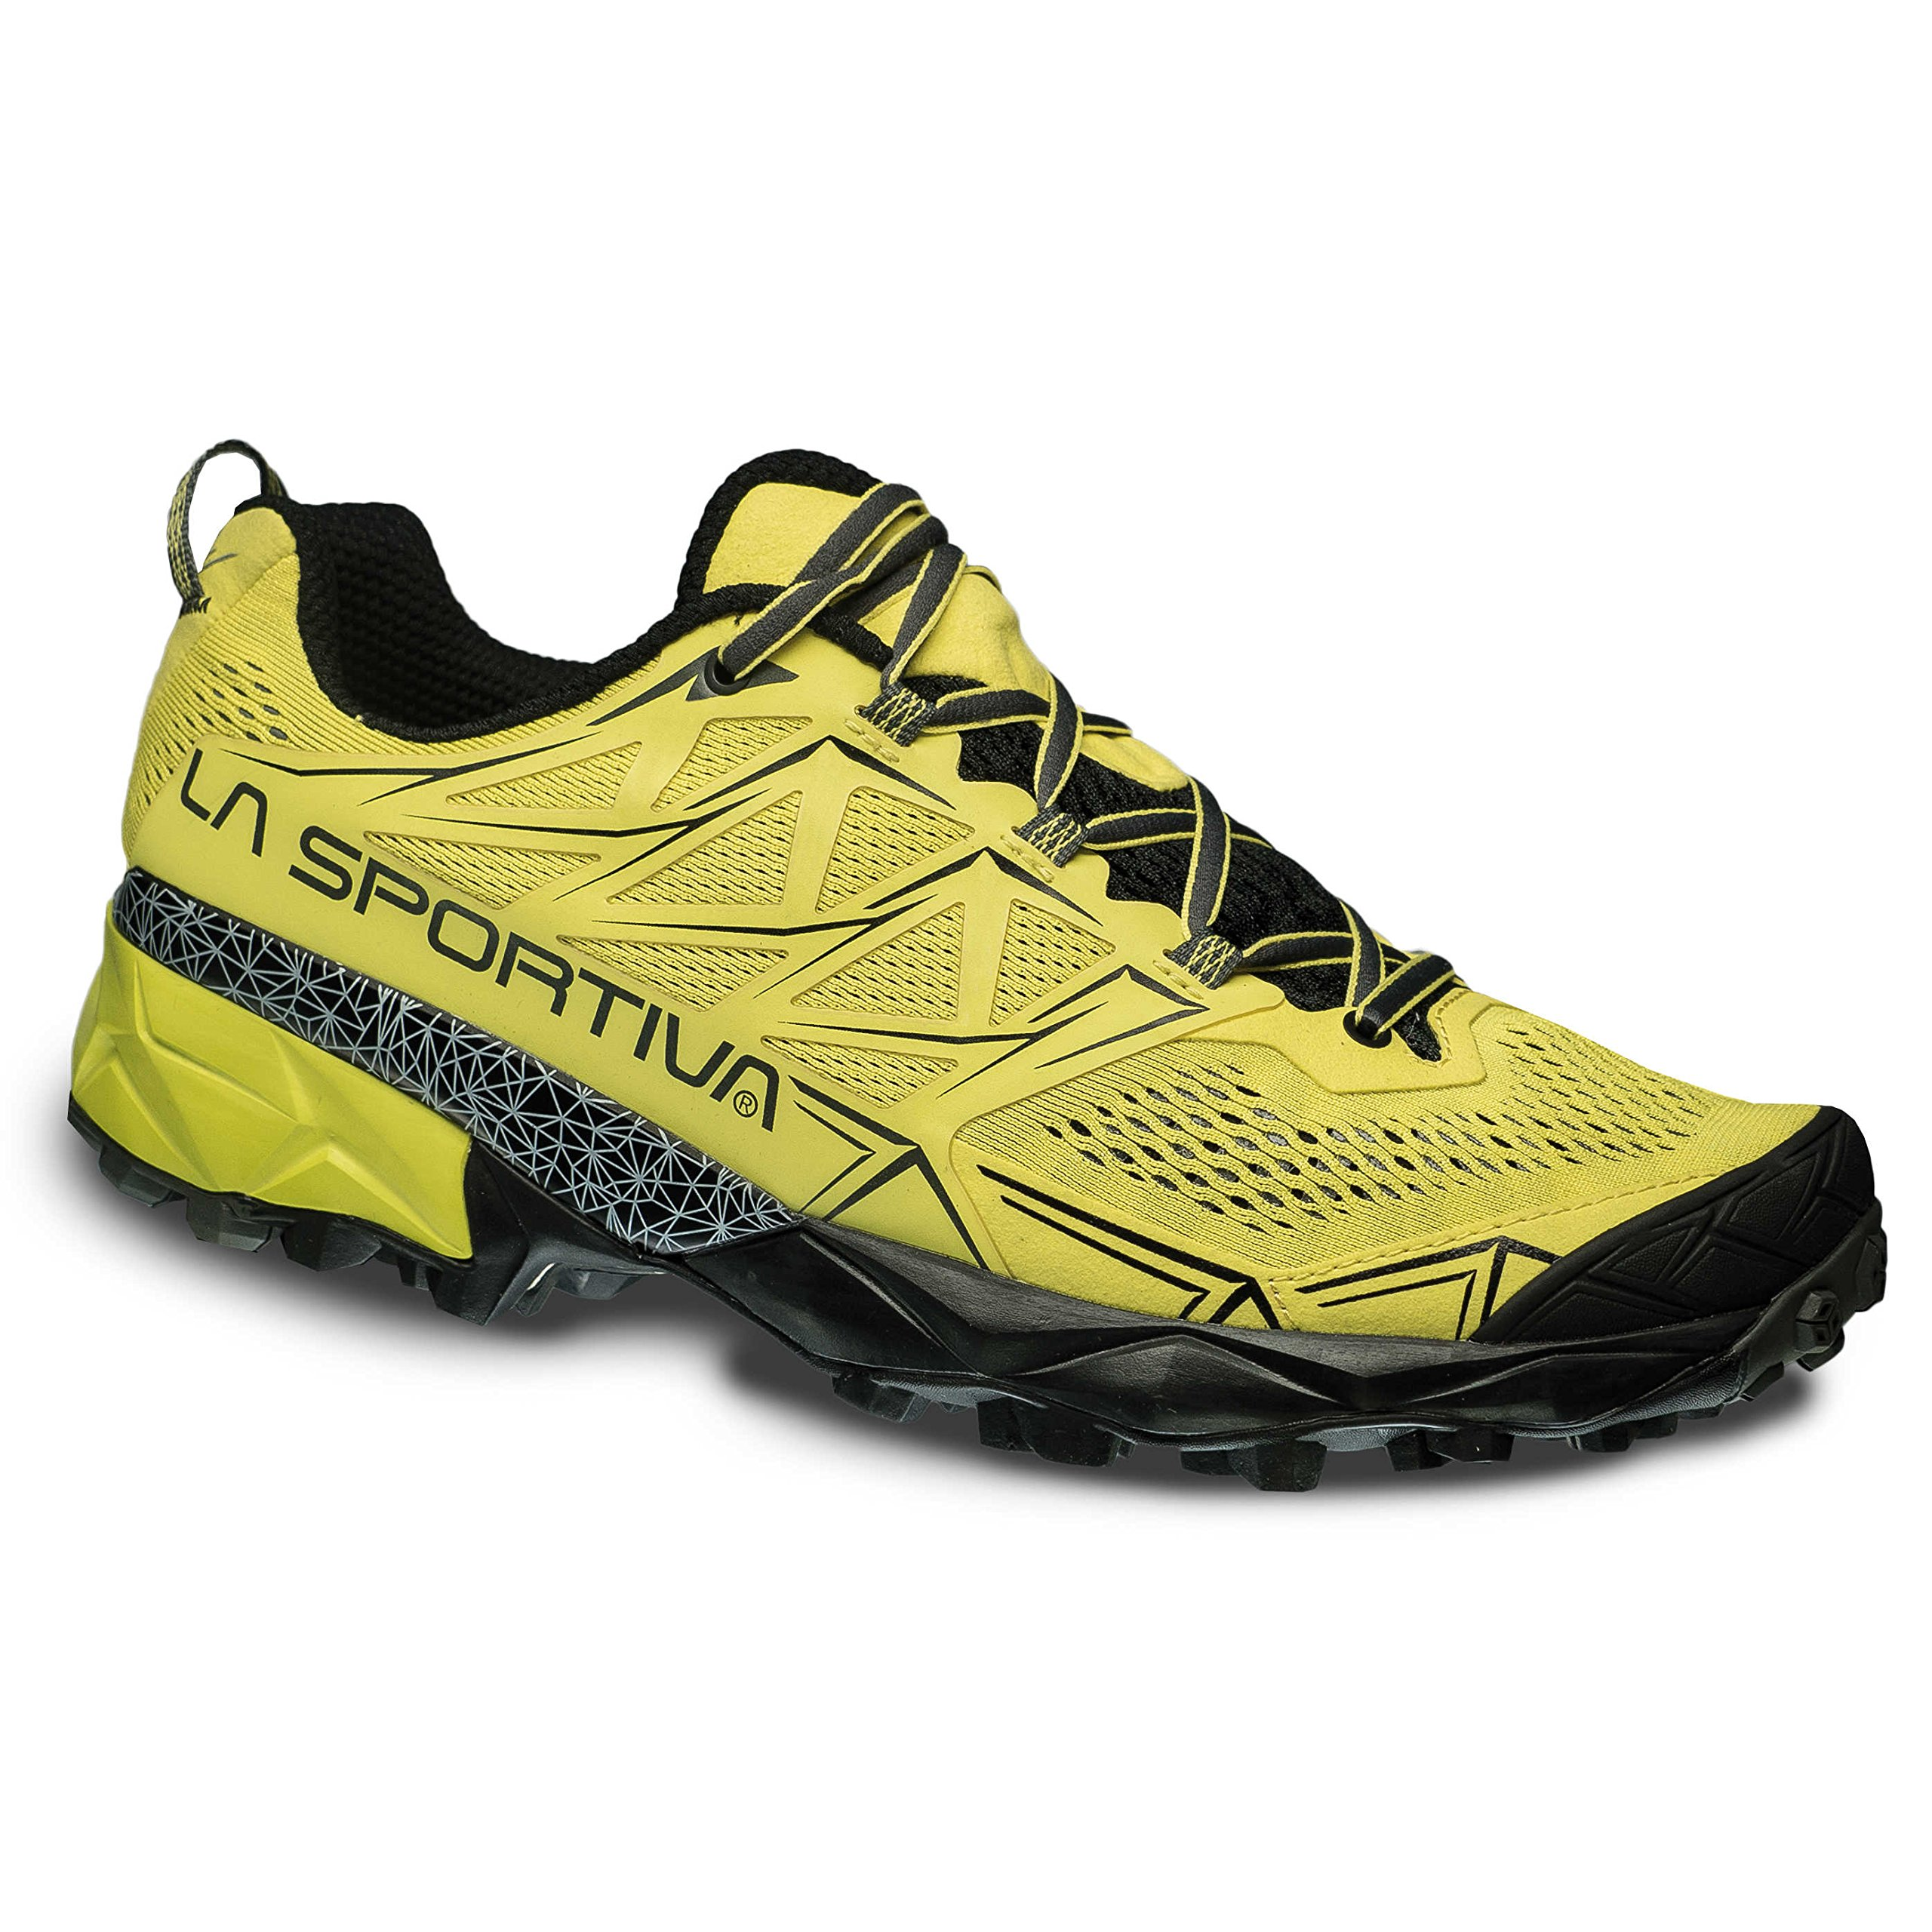 new product df162 5a694 La Sportiva Akyra, Scarpe da Trail Running Uomo product image